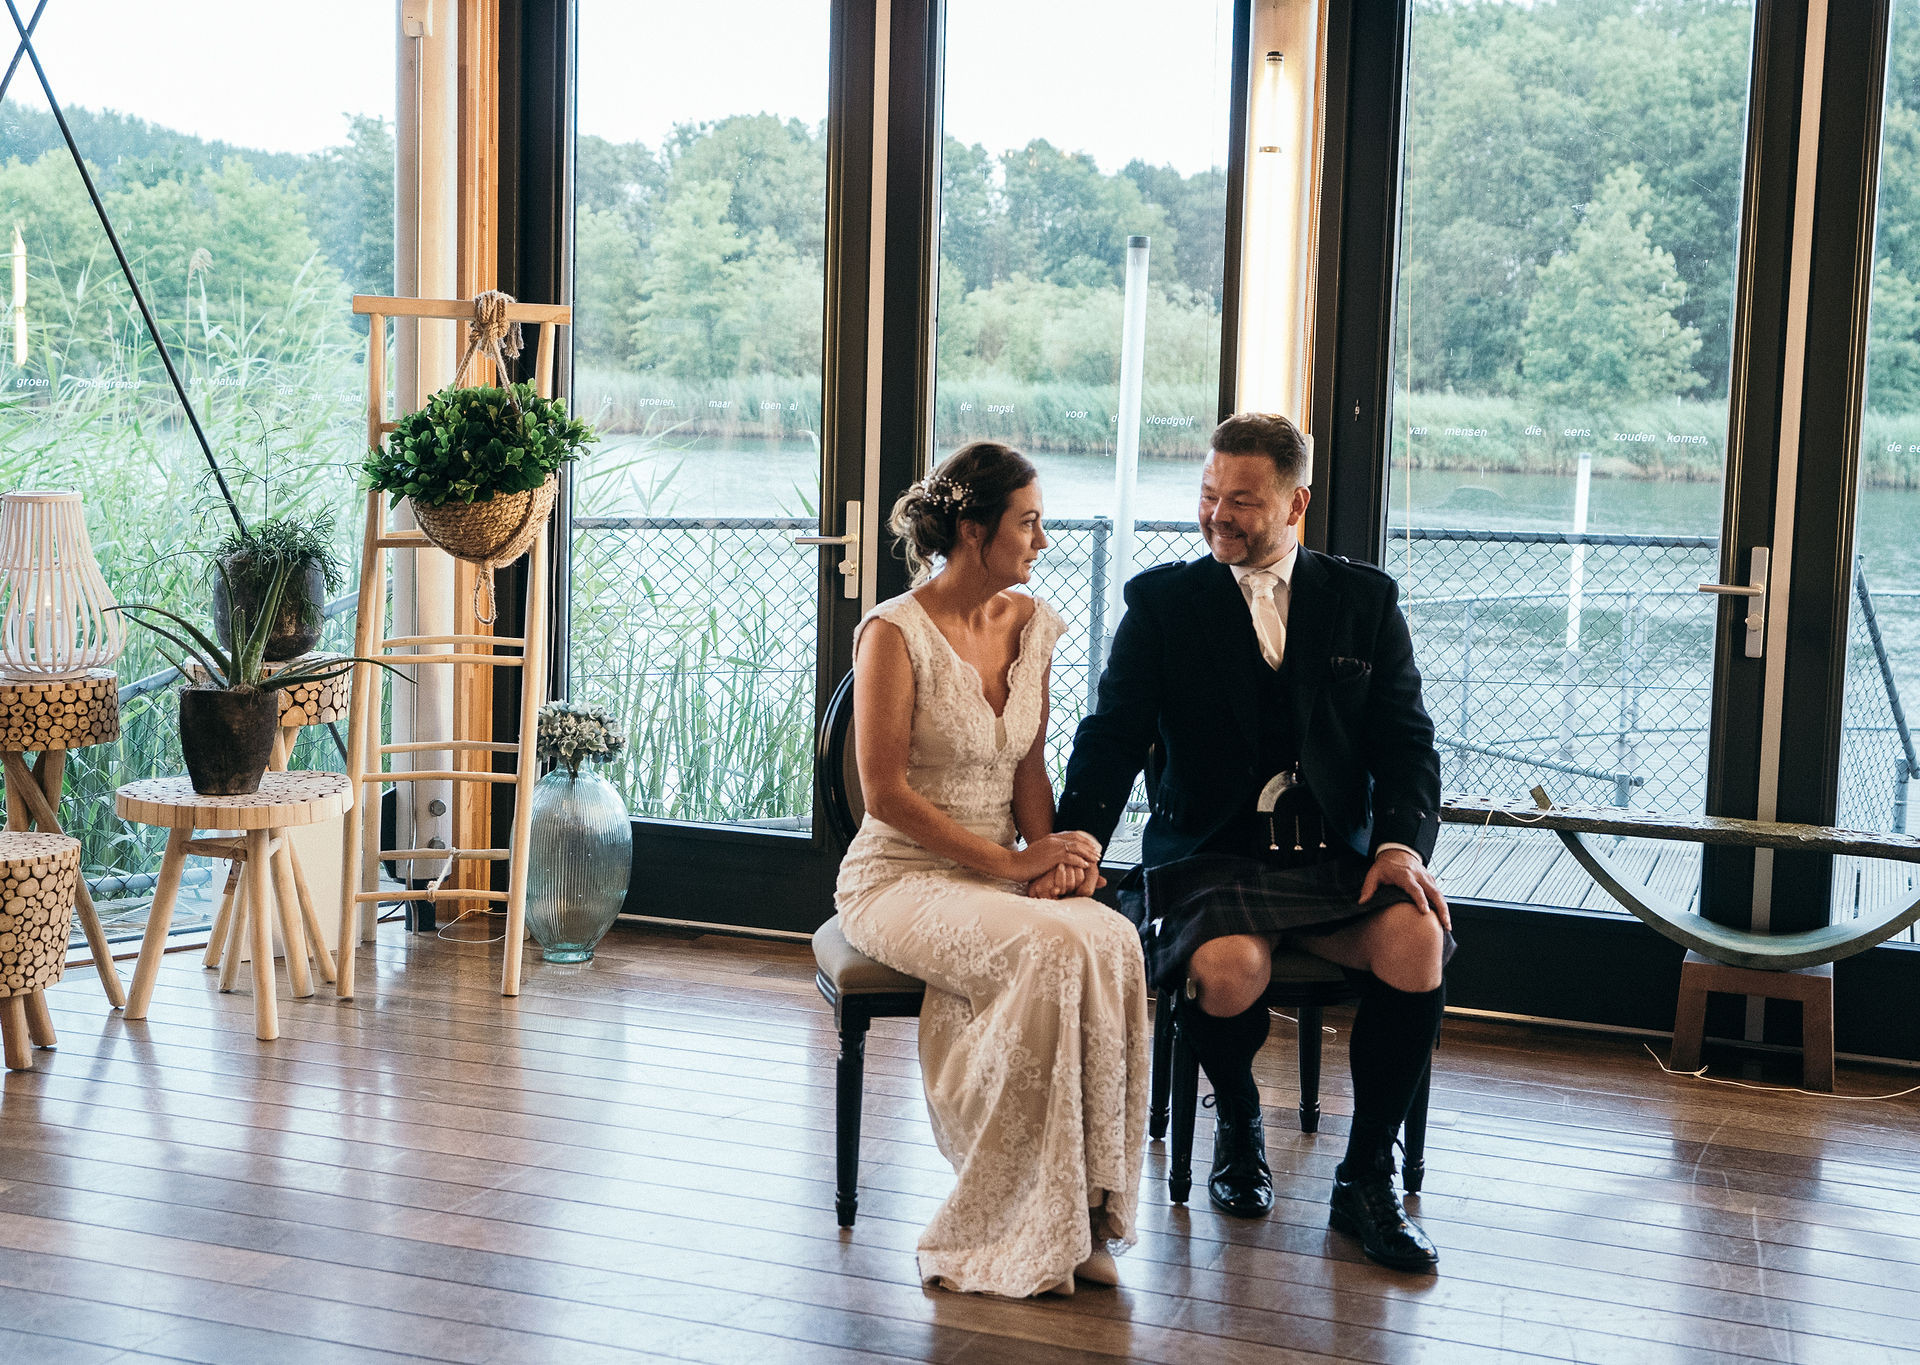 Bride-and-groom-sitting-at-ceremonie-Blank-and-Burnet-Photography